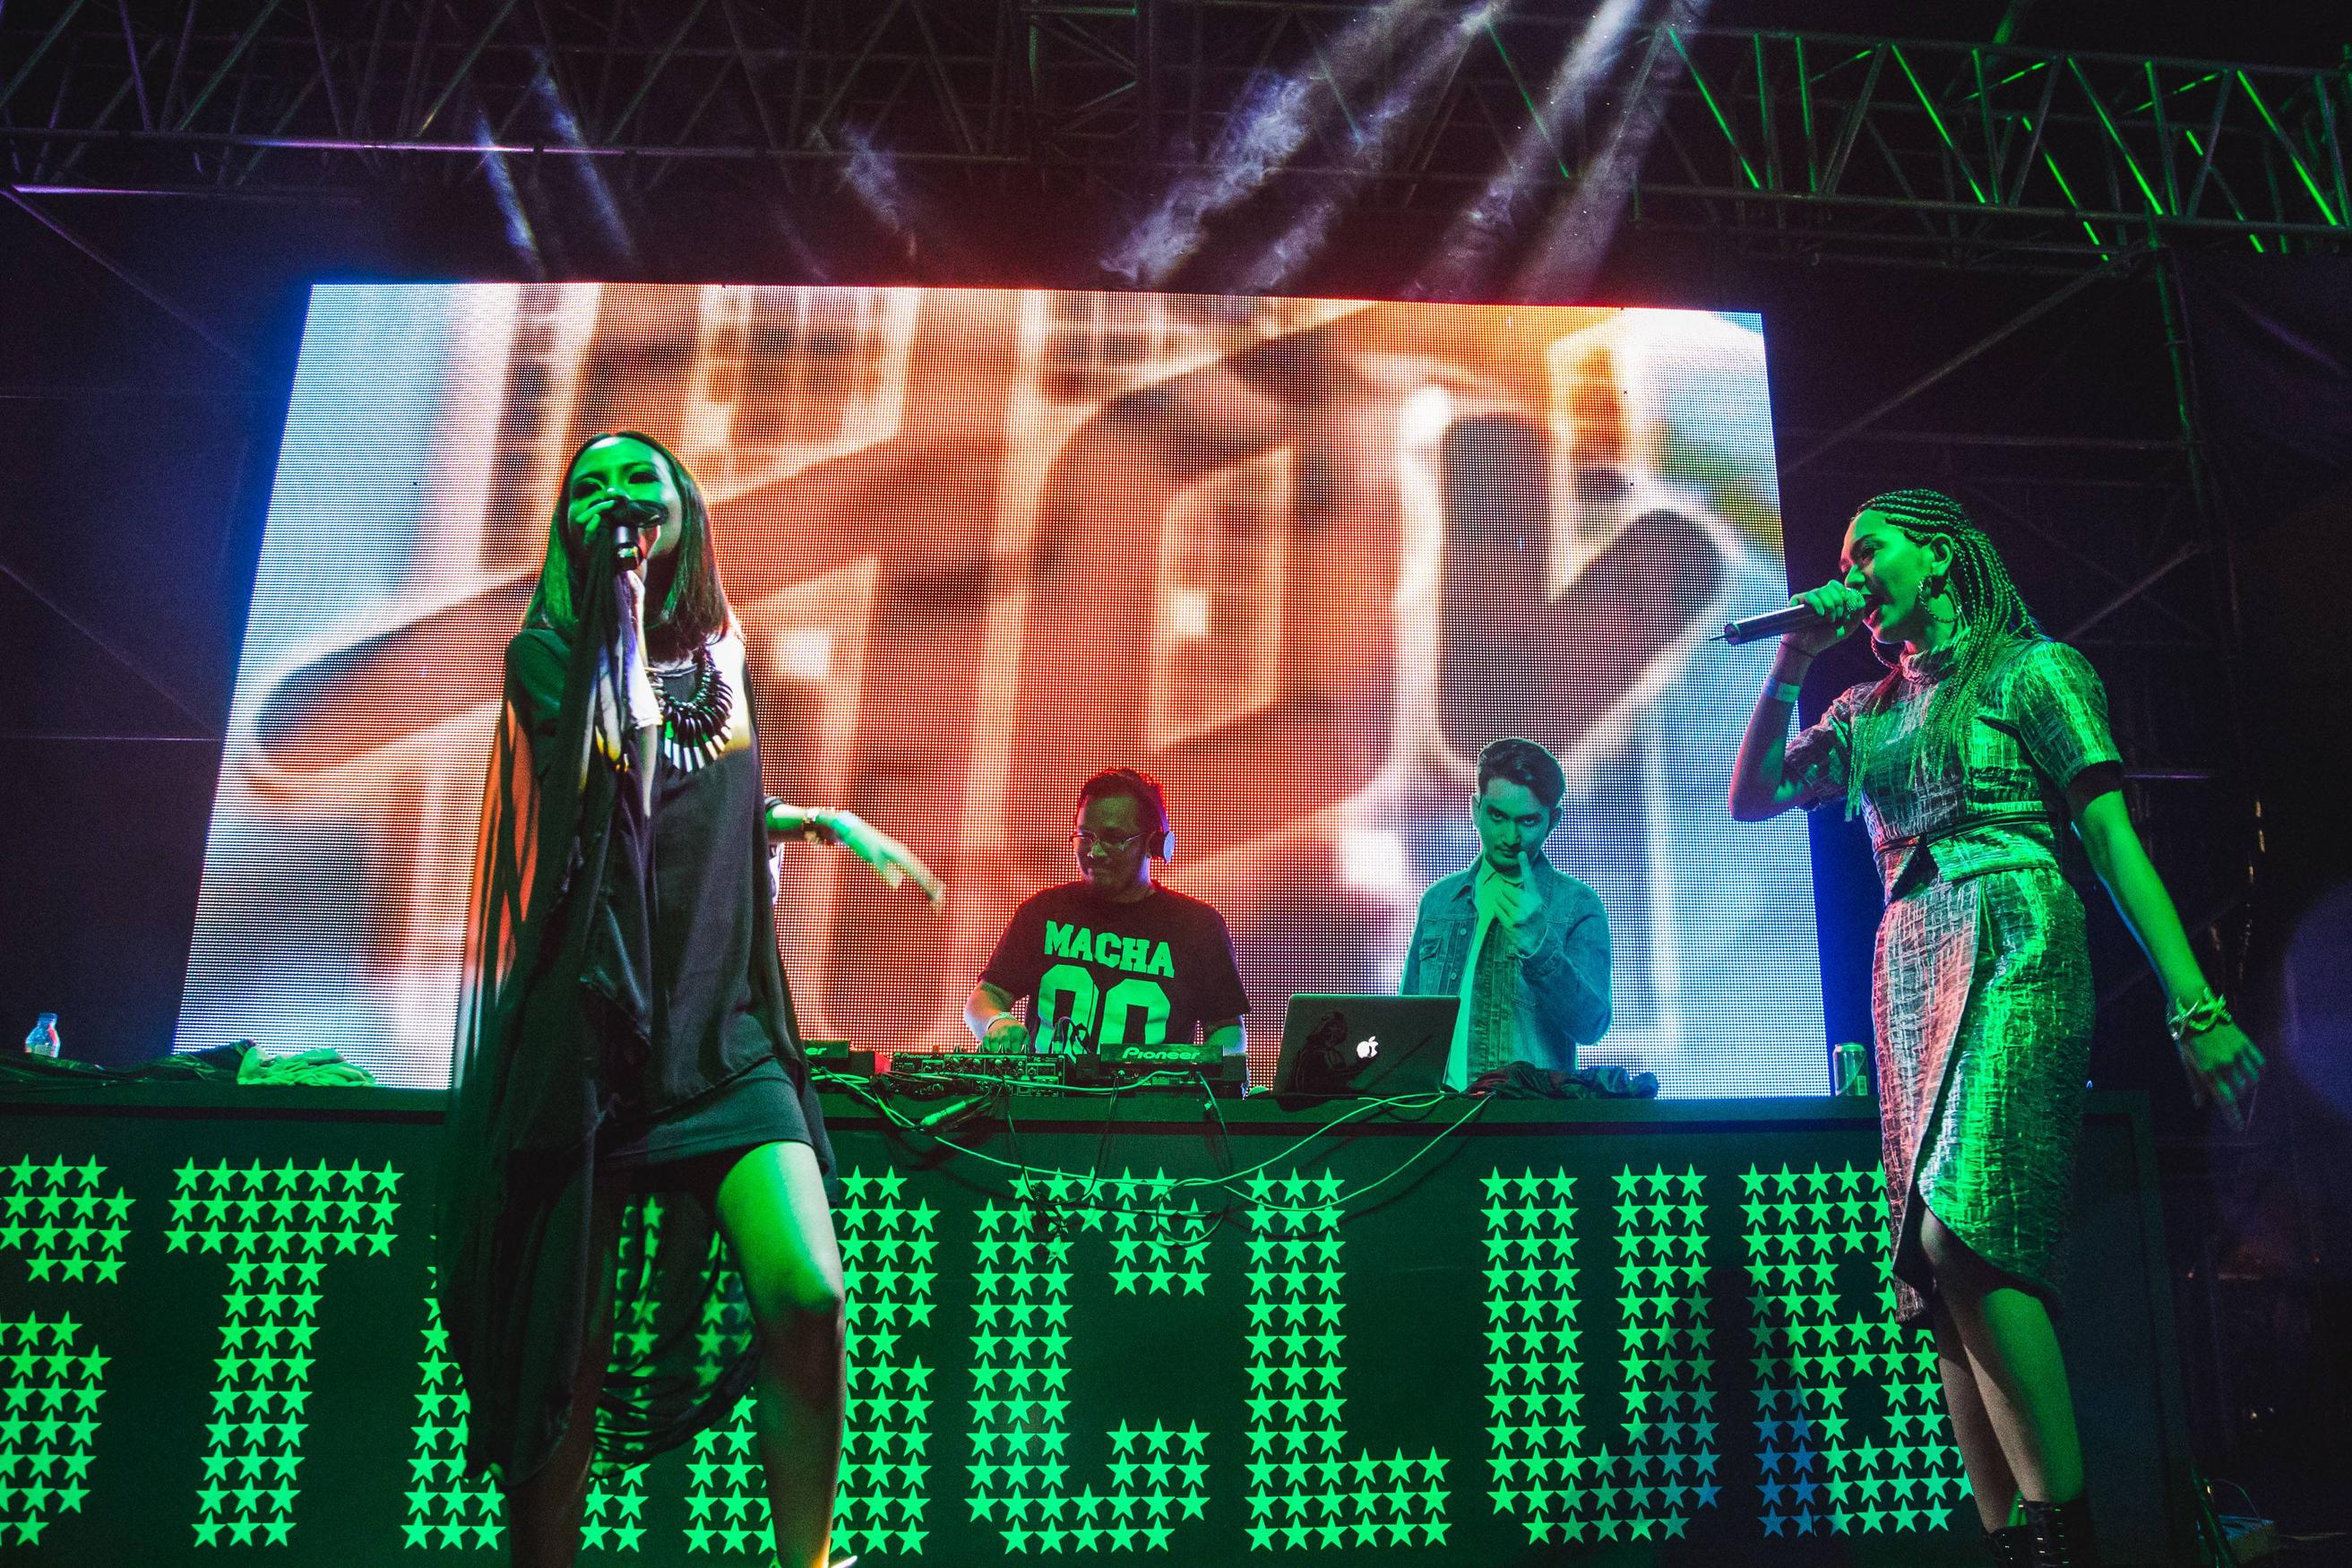 The party scene was at the Heineken Starclub, where five local Dj including LapSap and DANGERDISKO rocked the stage.